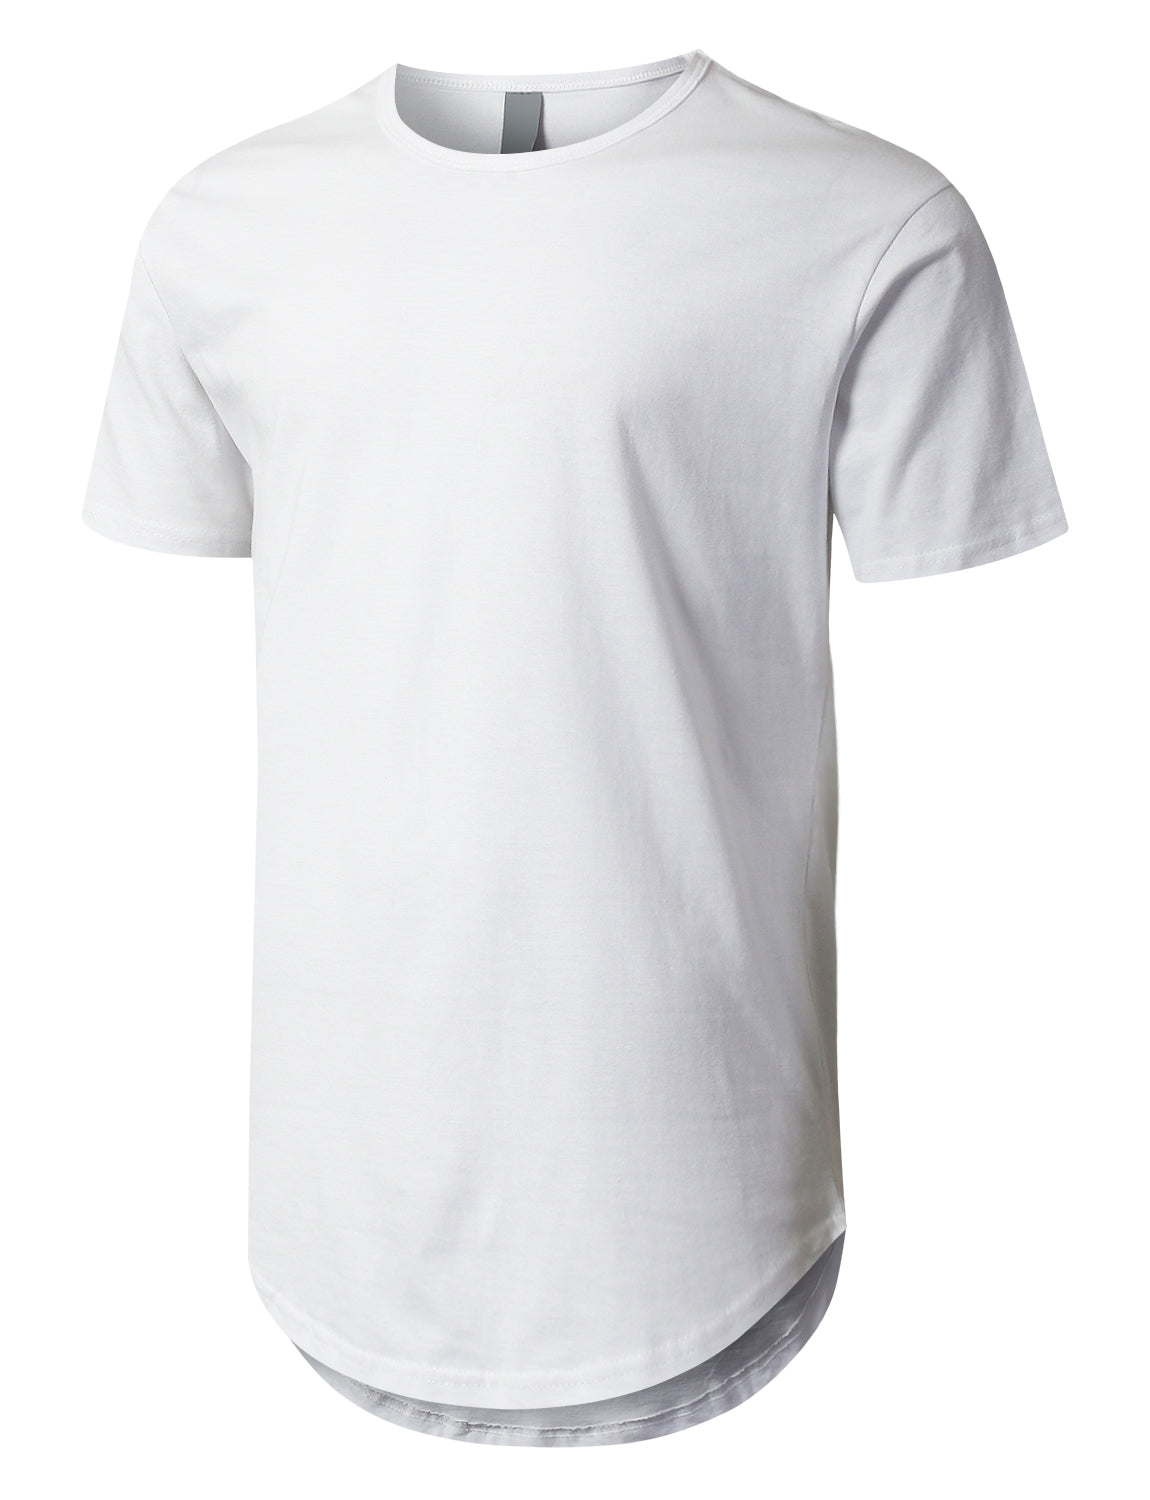 WHITE Crewneck Basic T-Shirts White